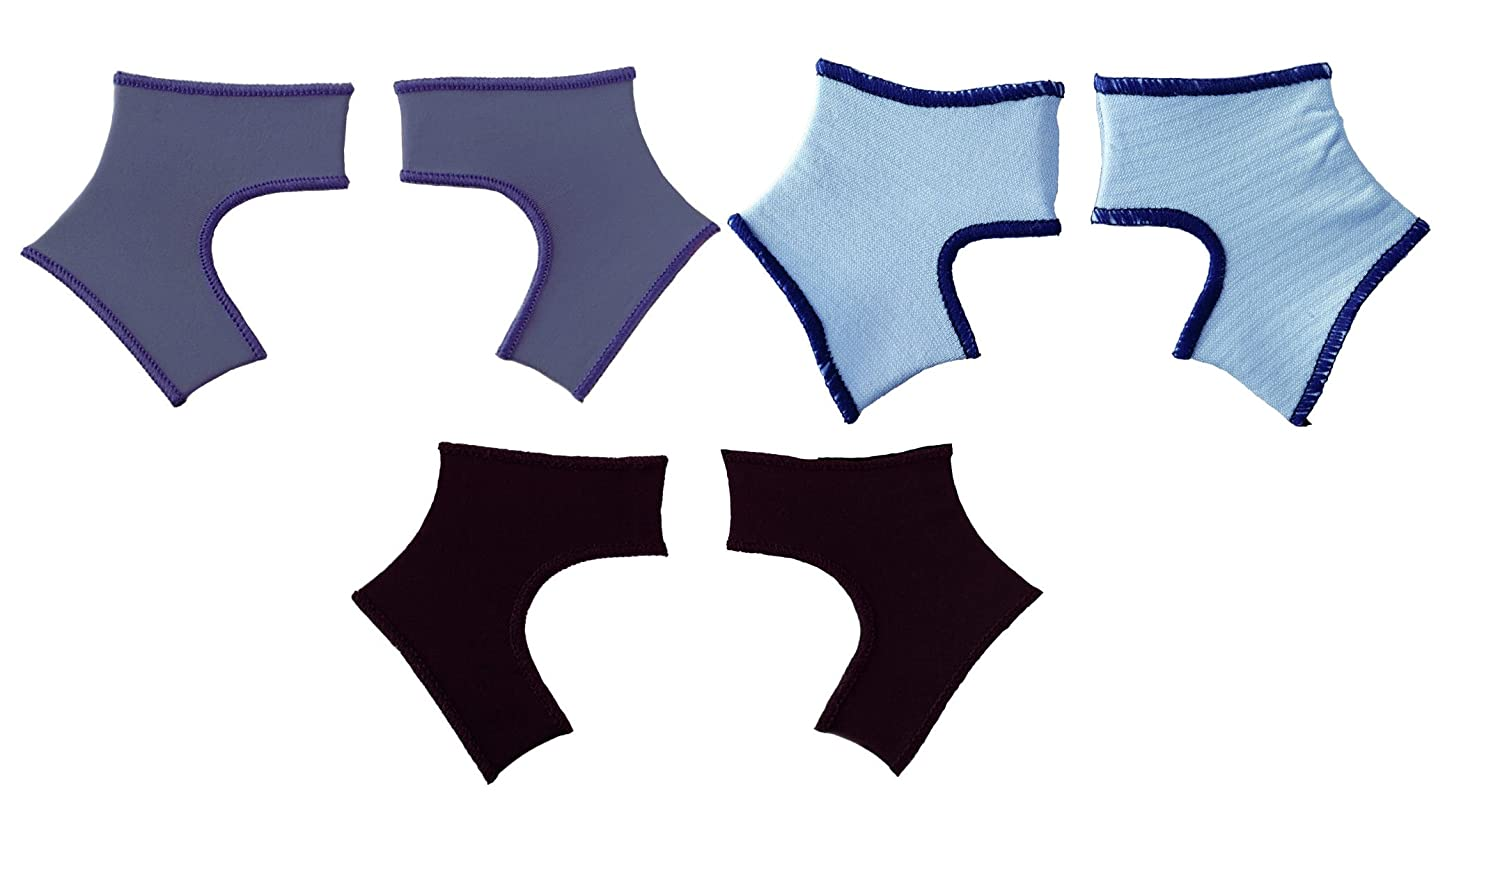 Set of 3 Sock Ons Clever Little Things That Keep Baby Socks On! 6-12M, BLACK-BLUE-BLUEBERRY